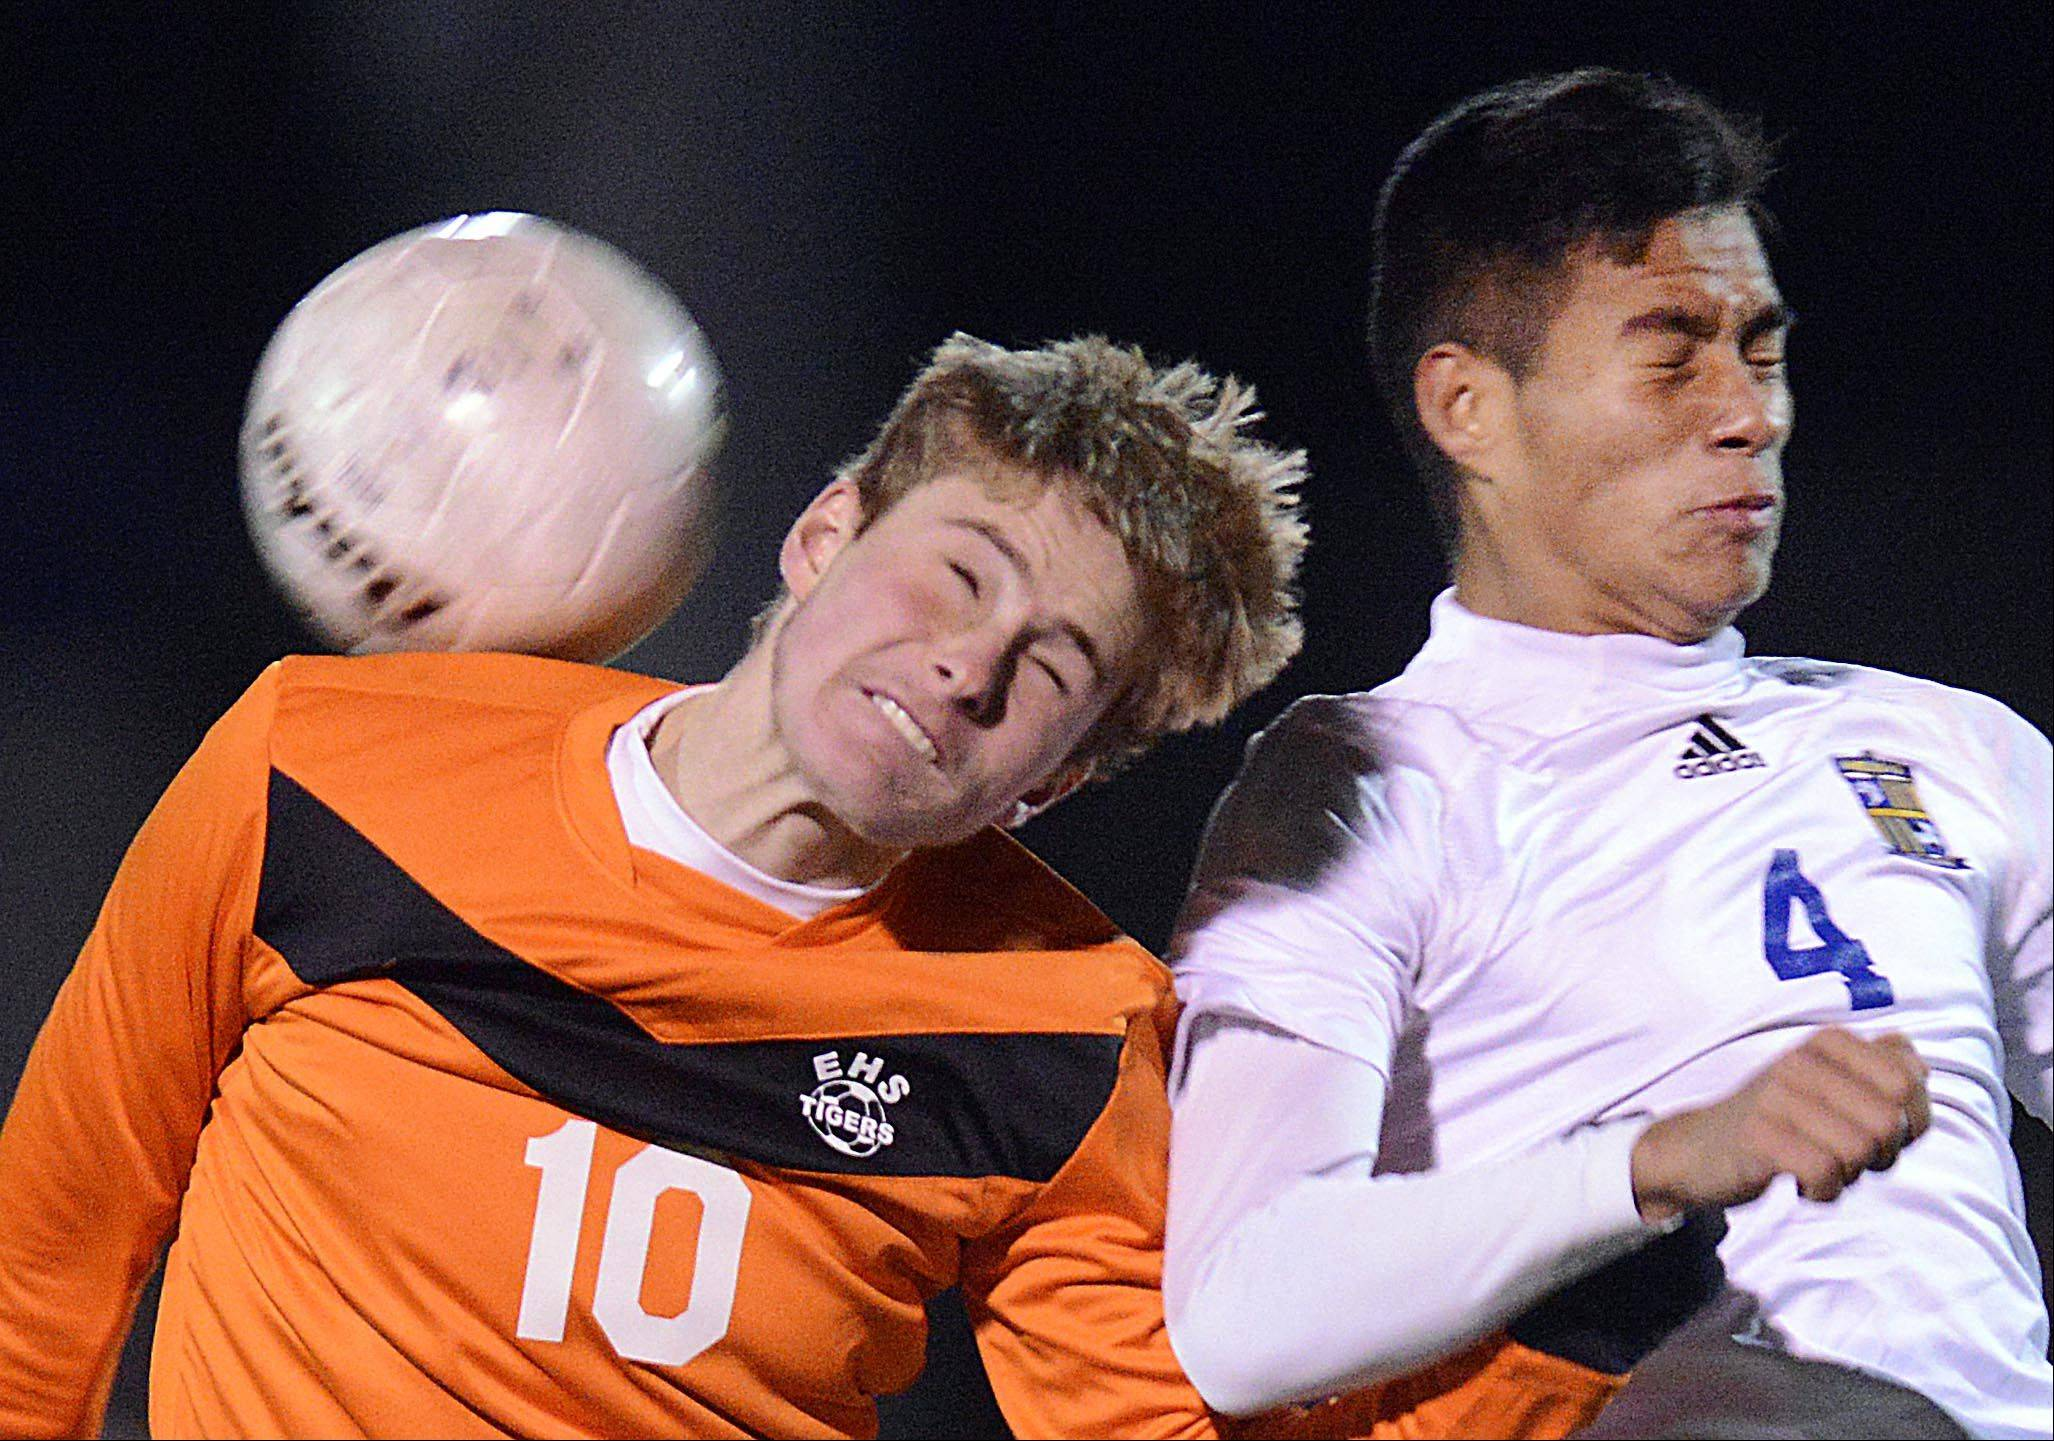 Wheeling's Francisco Arellano and Edwardsville's Lando Paul compete for a header in the Class 3A boys soccer state championship game Saturday night in Hoffman Estates.